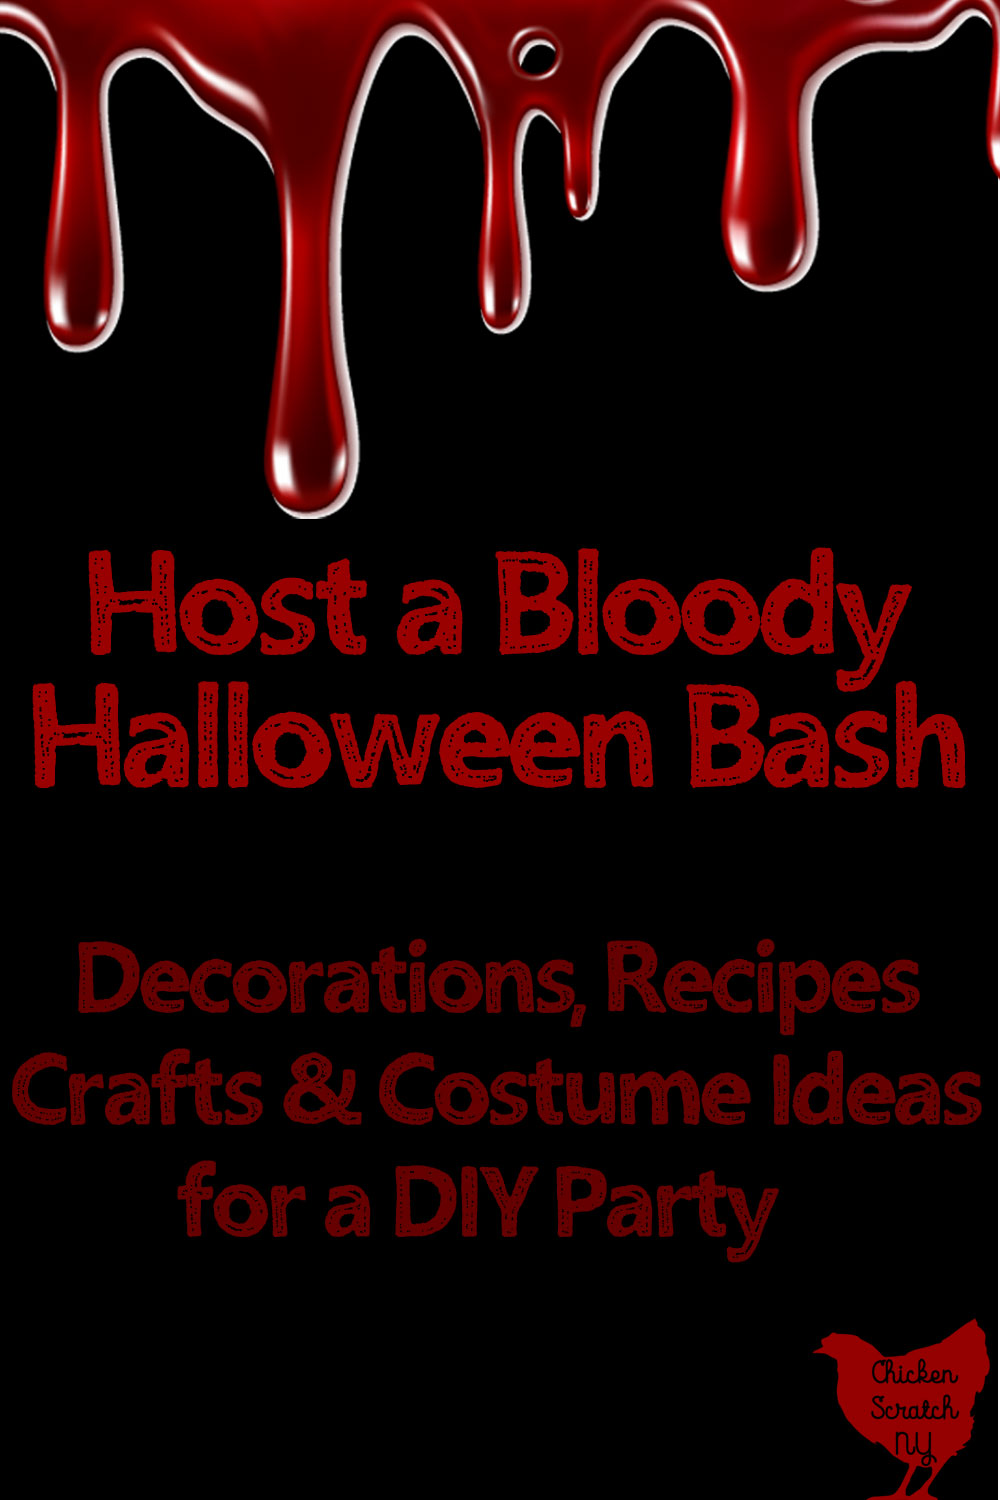 blood drip border over a black background with text Host a bloody Halloween bash DIY ideas for an adult Halloween party